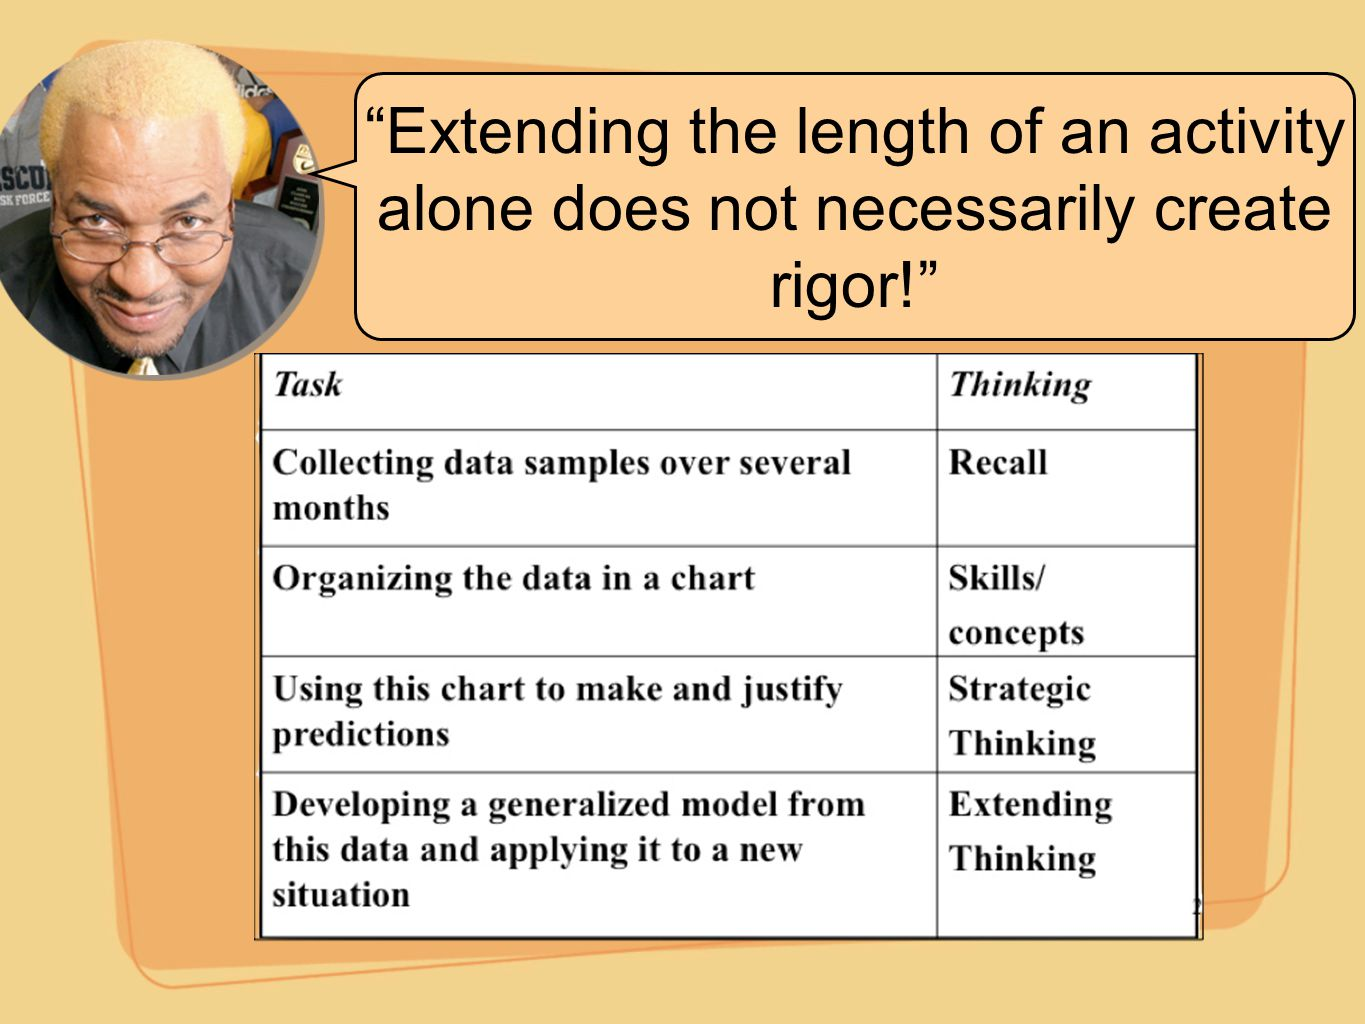 Extending the length of an activity alone does not necessarily create rigor!